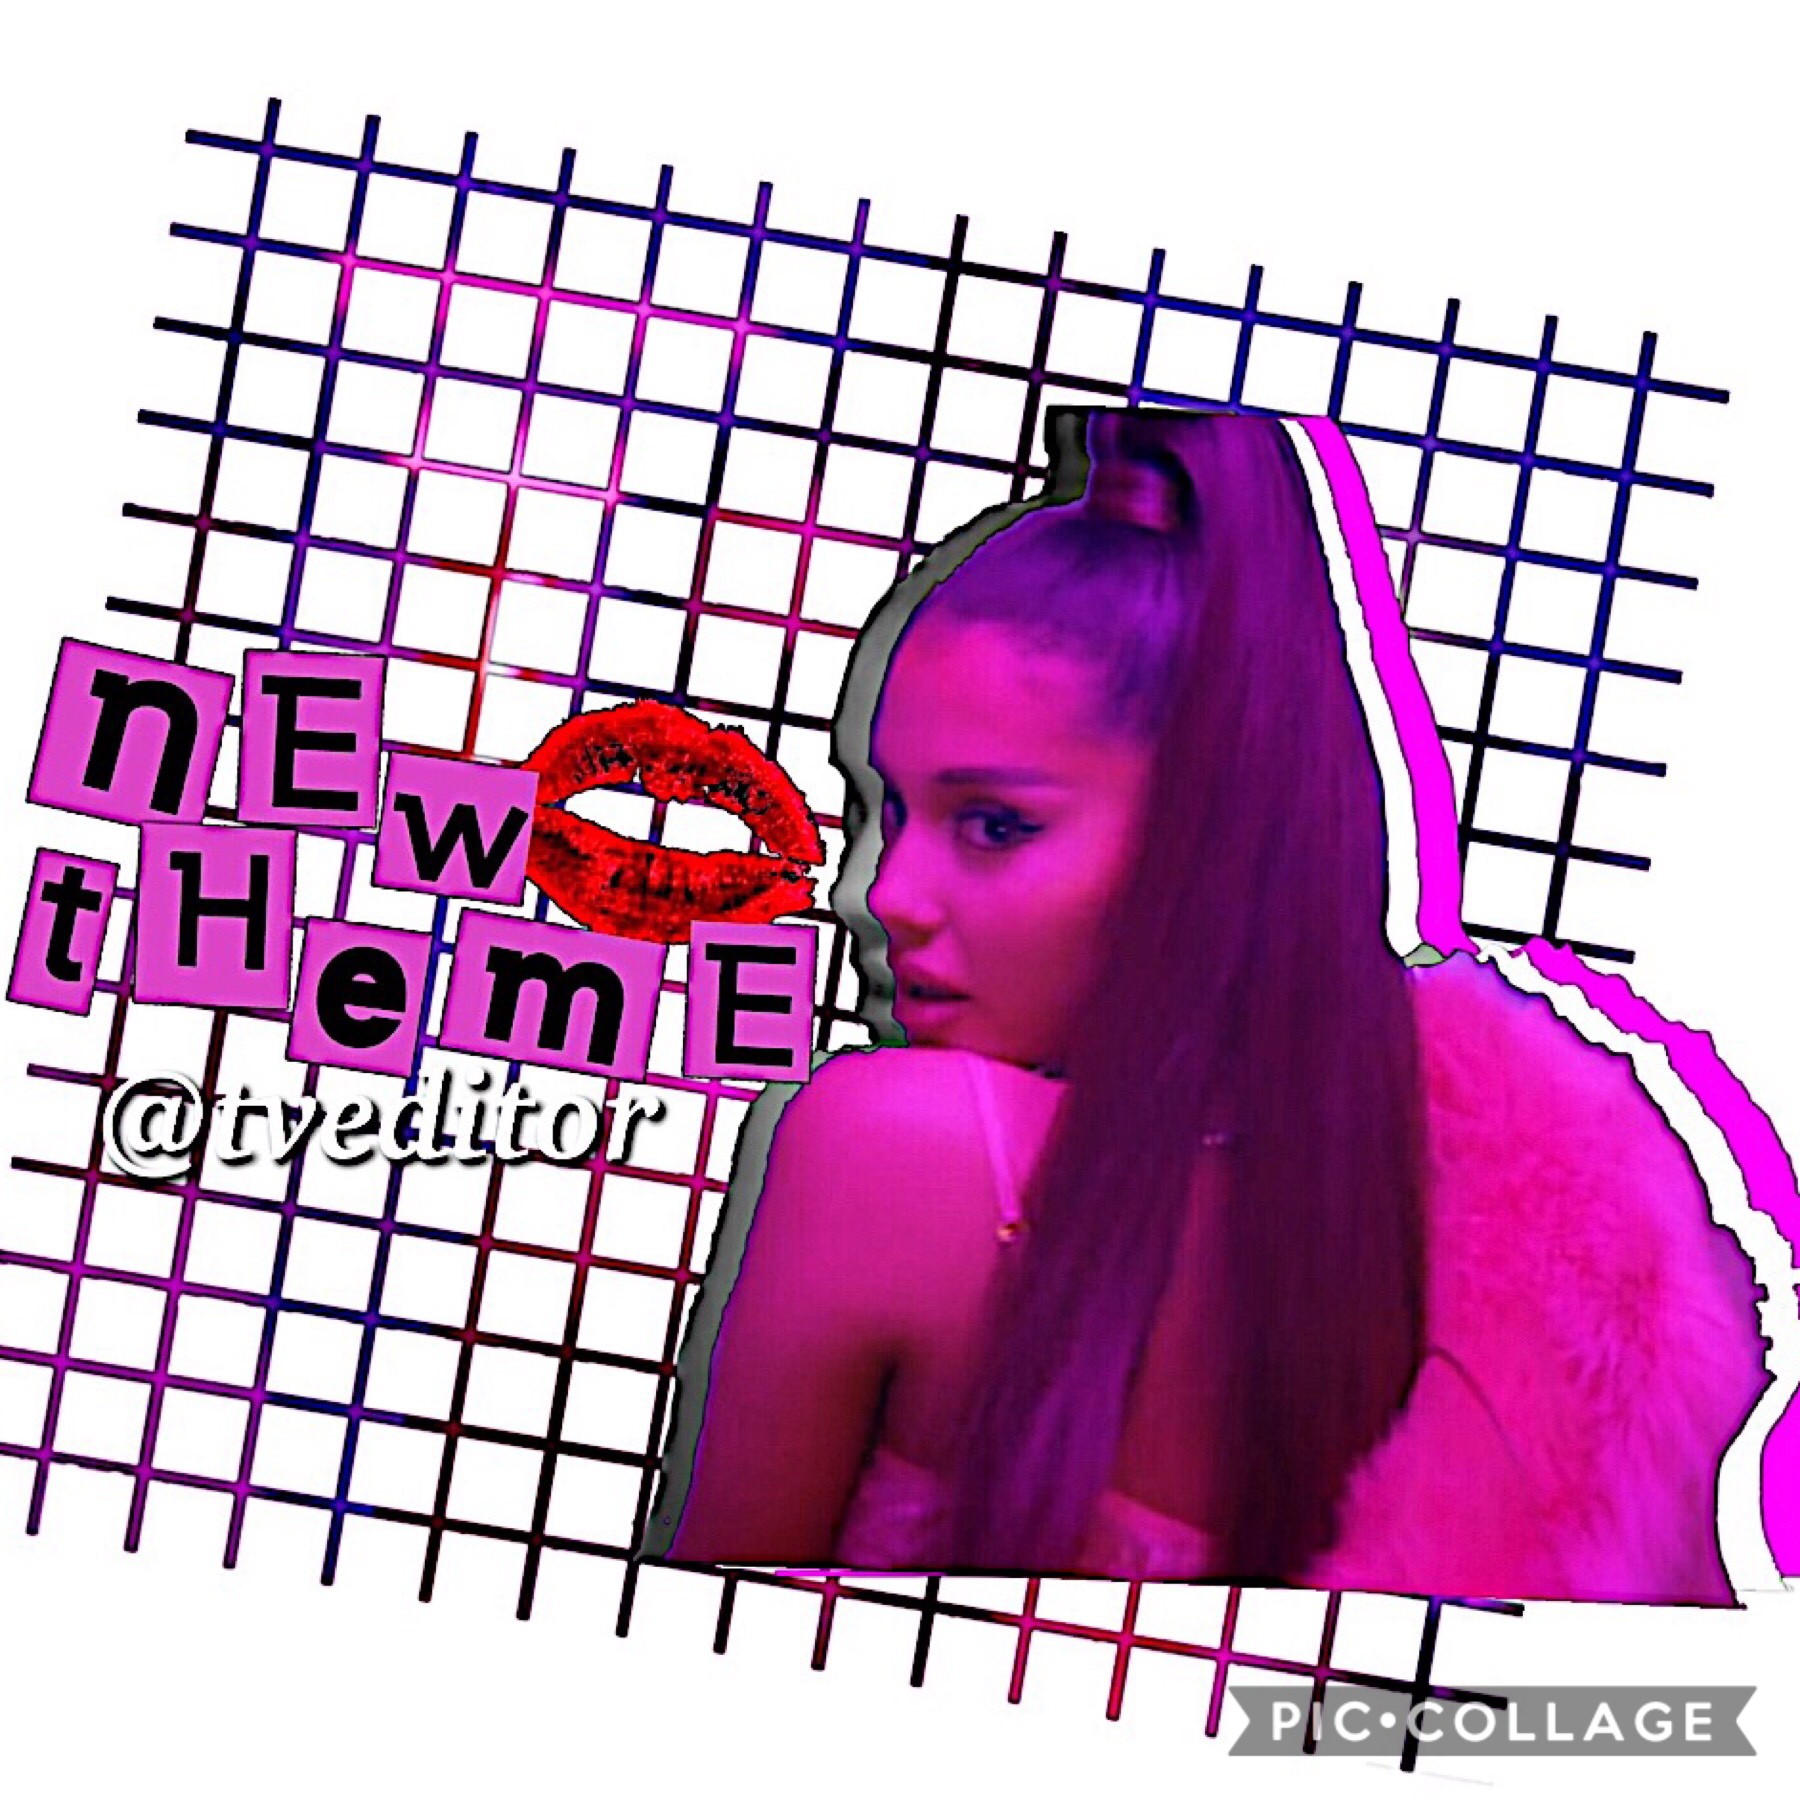 guess who's back💗 creds to the overlay I used for the new theme! I miss you guys all <3  I'll try to be active xx 💋 I love 7 rings y'all 😍😍 cya xo